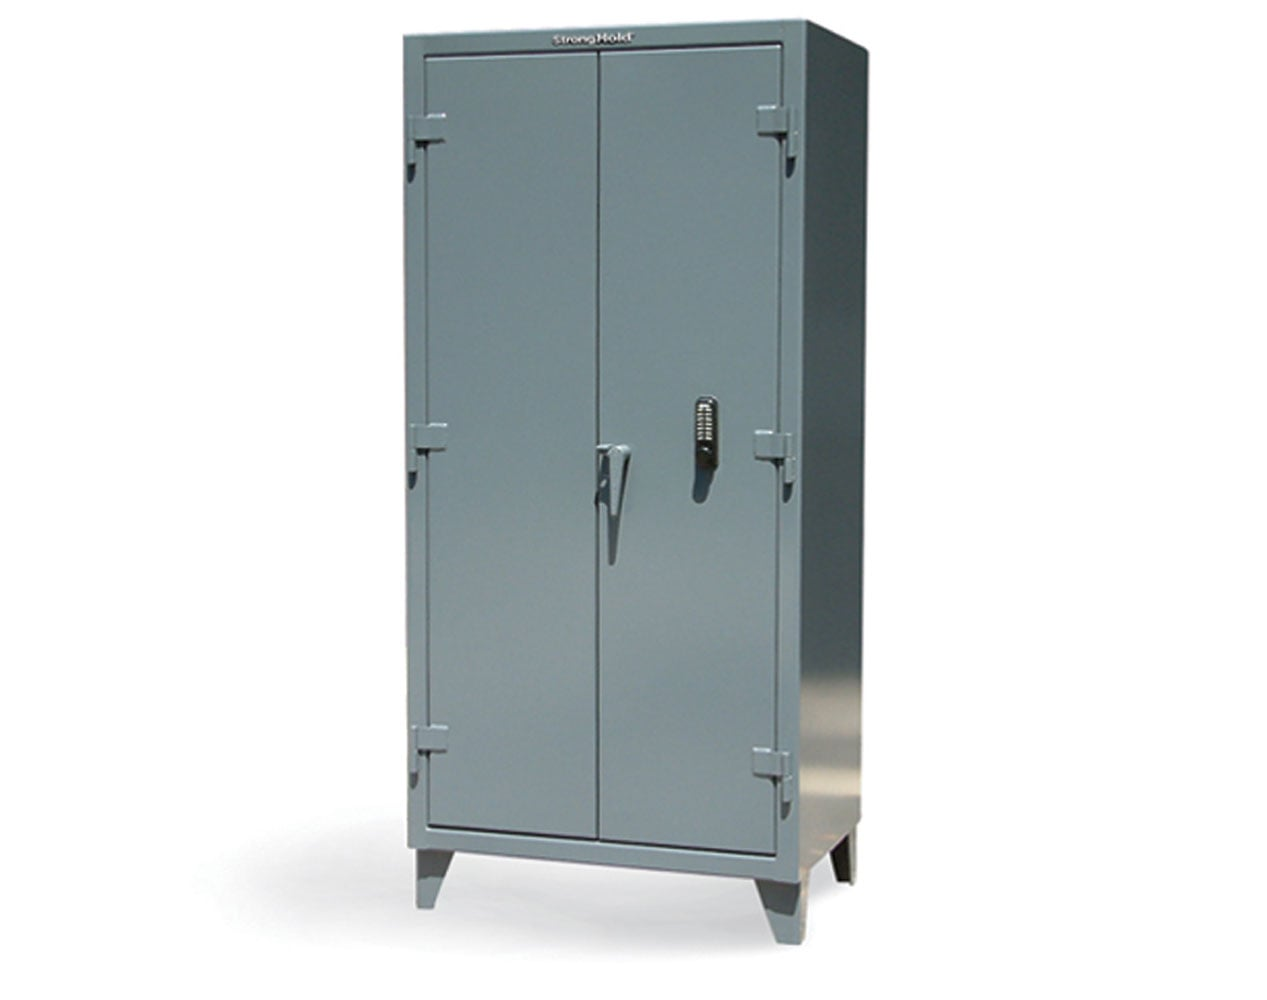 Extra Heavy Duty 12 GA Cabinet with Keypad, 4 Shelves – 60 In. W x 24 In. D x 78 In. H